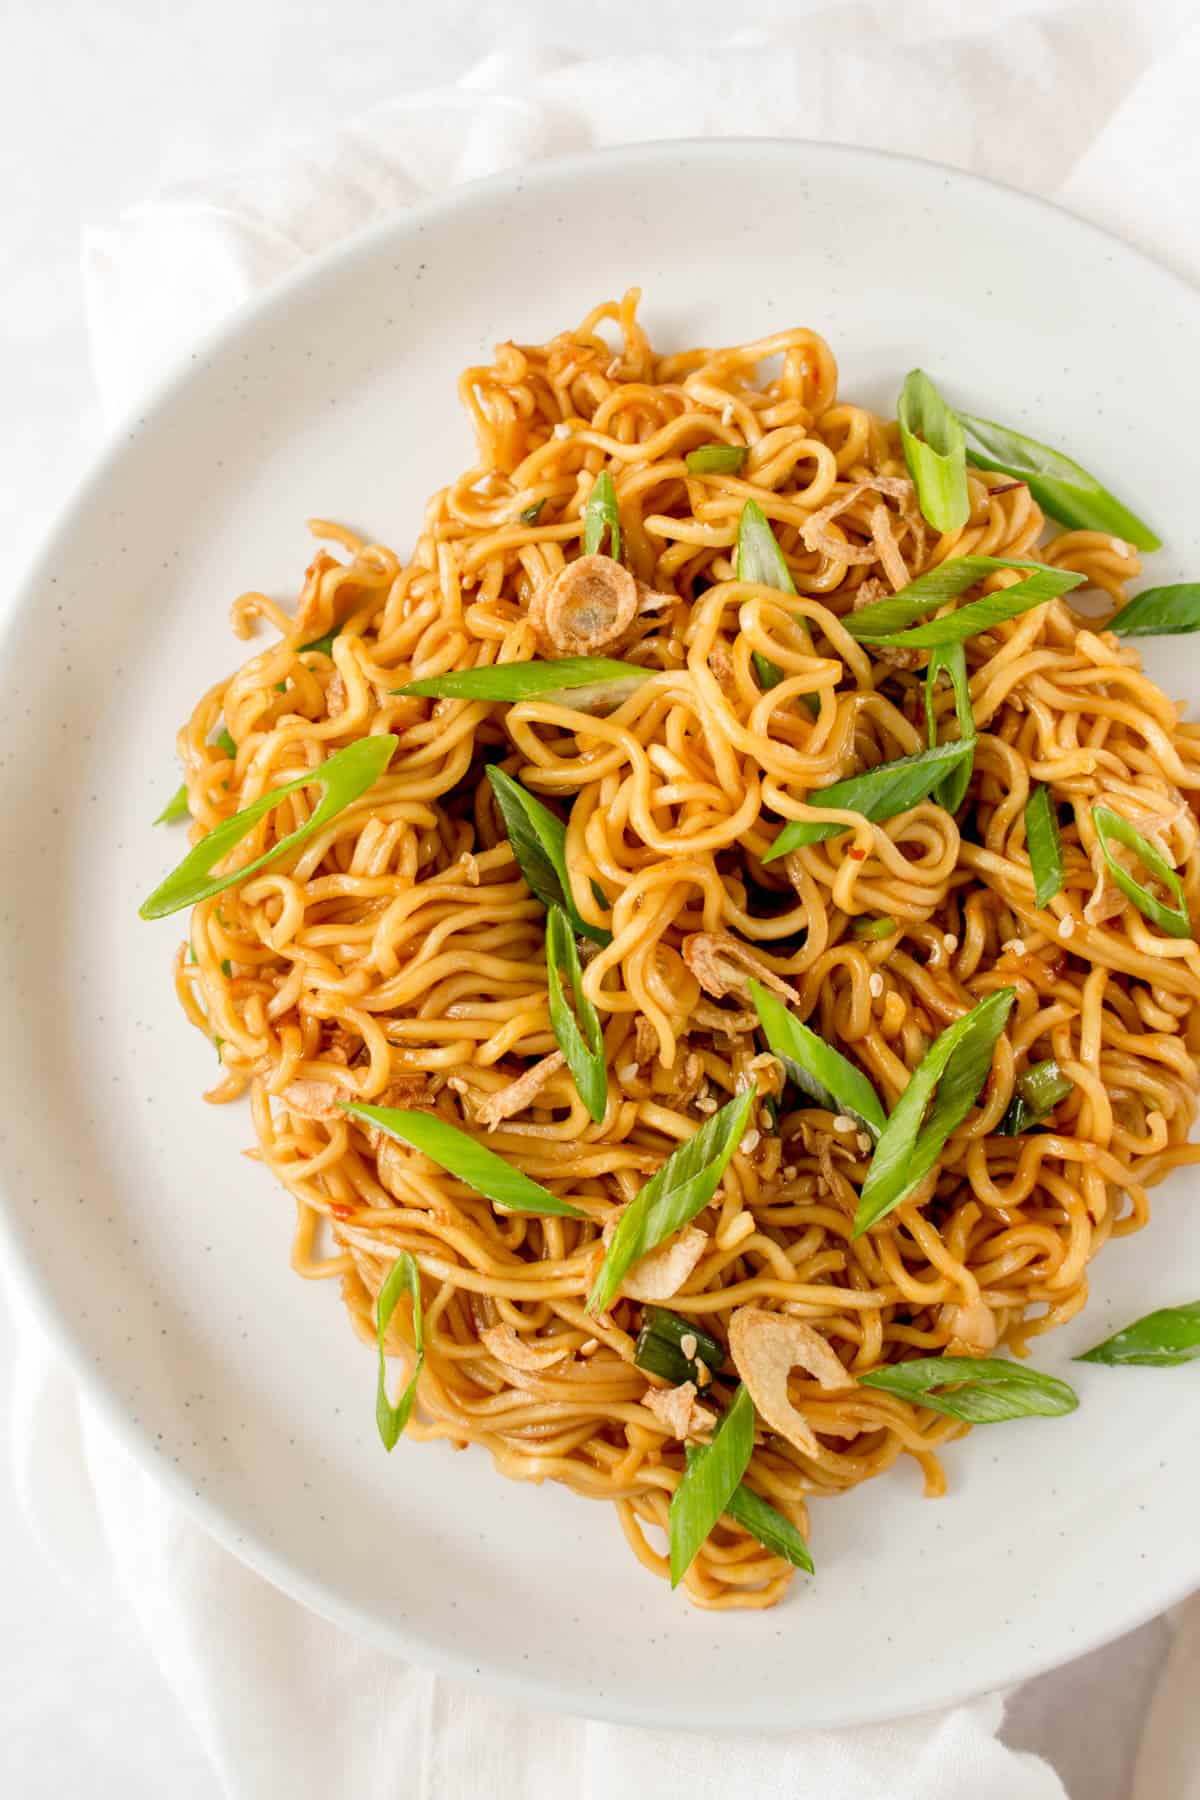 A plate of sesame noodles with green onions.